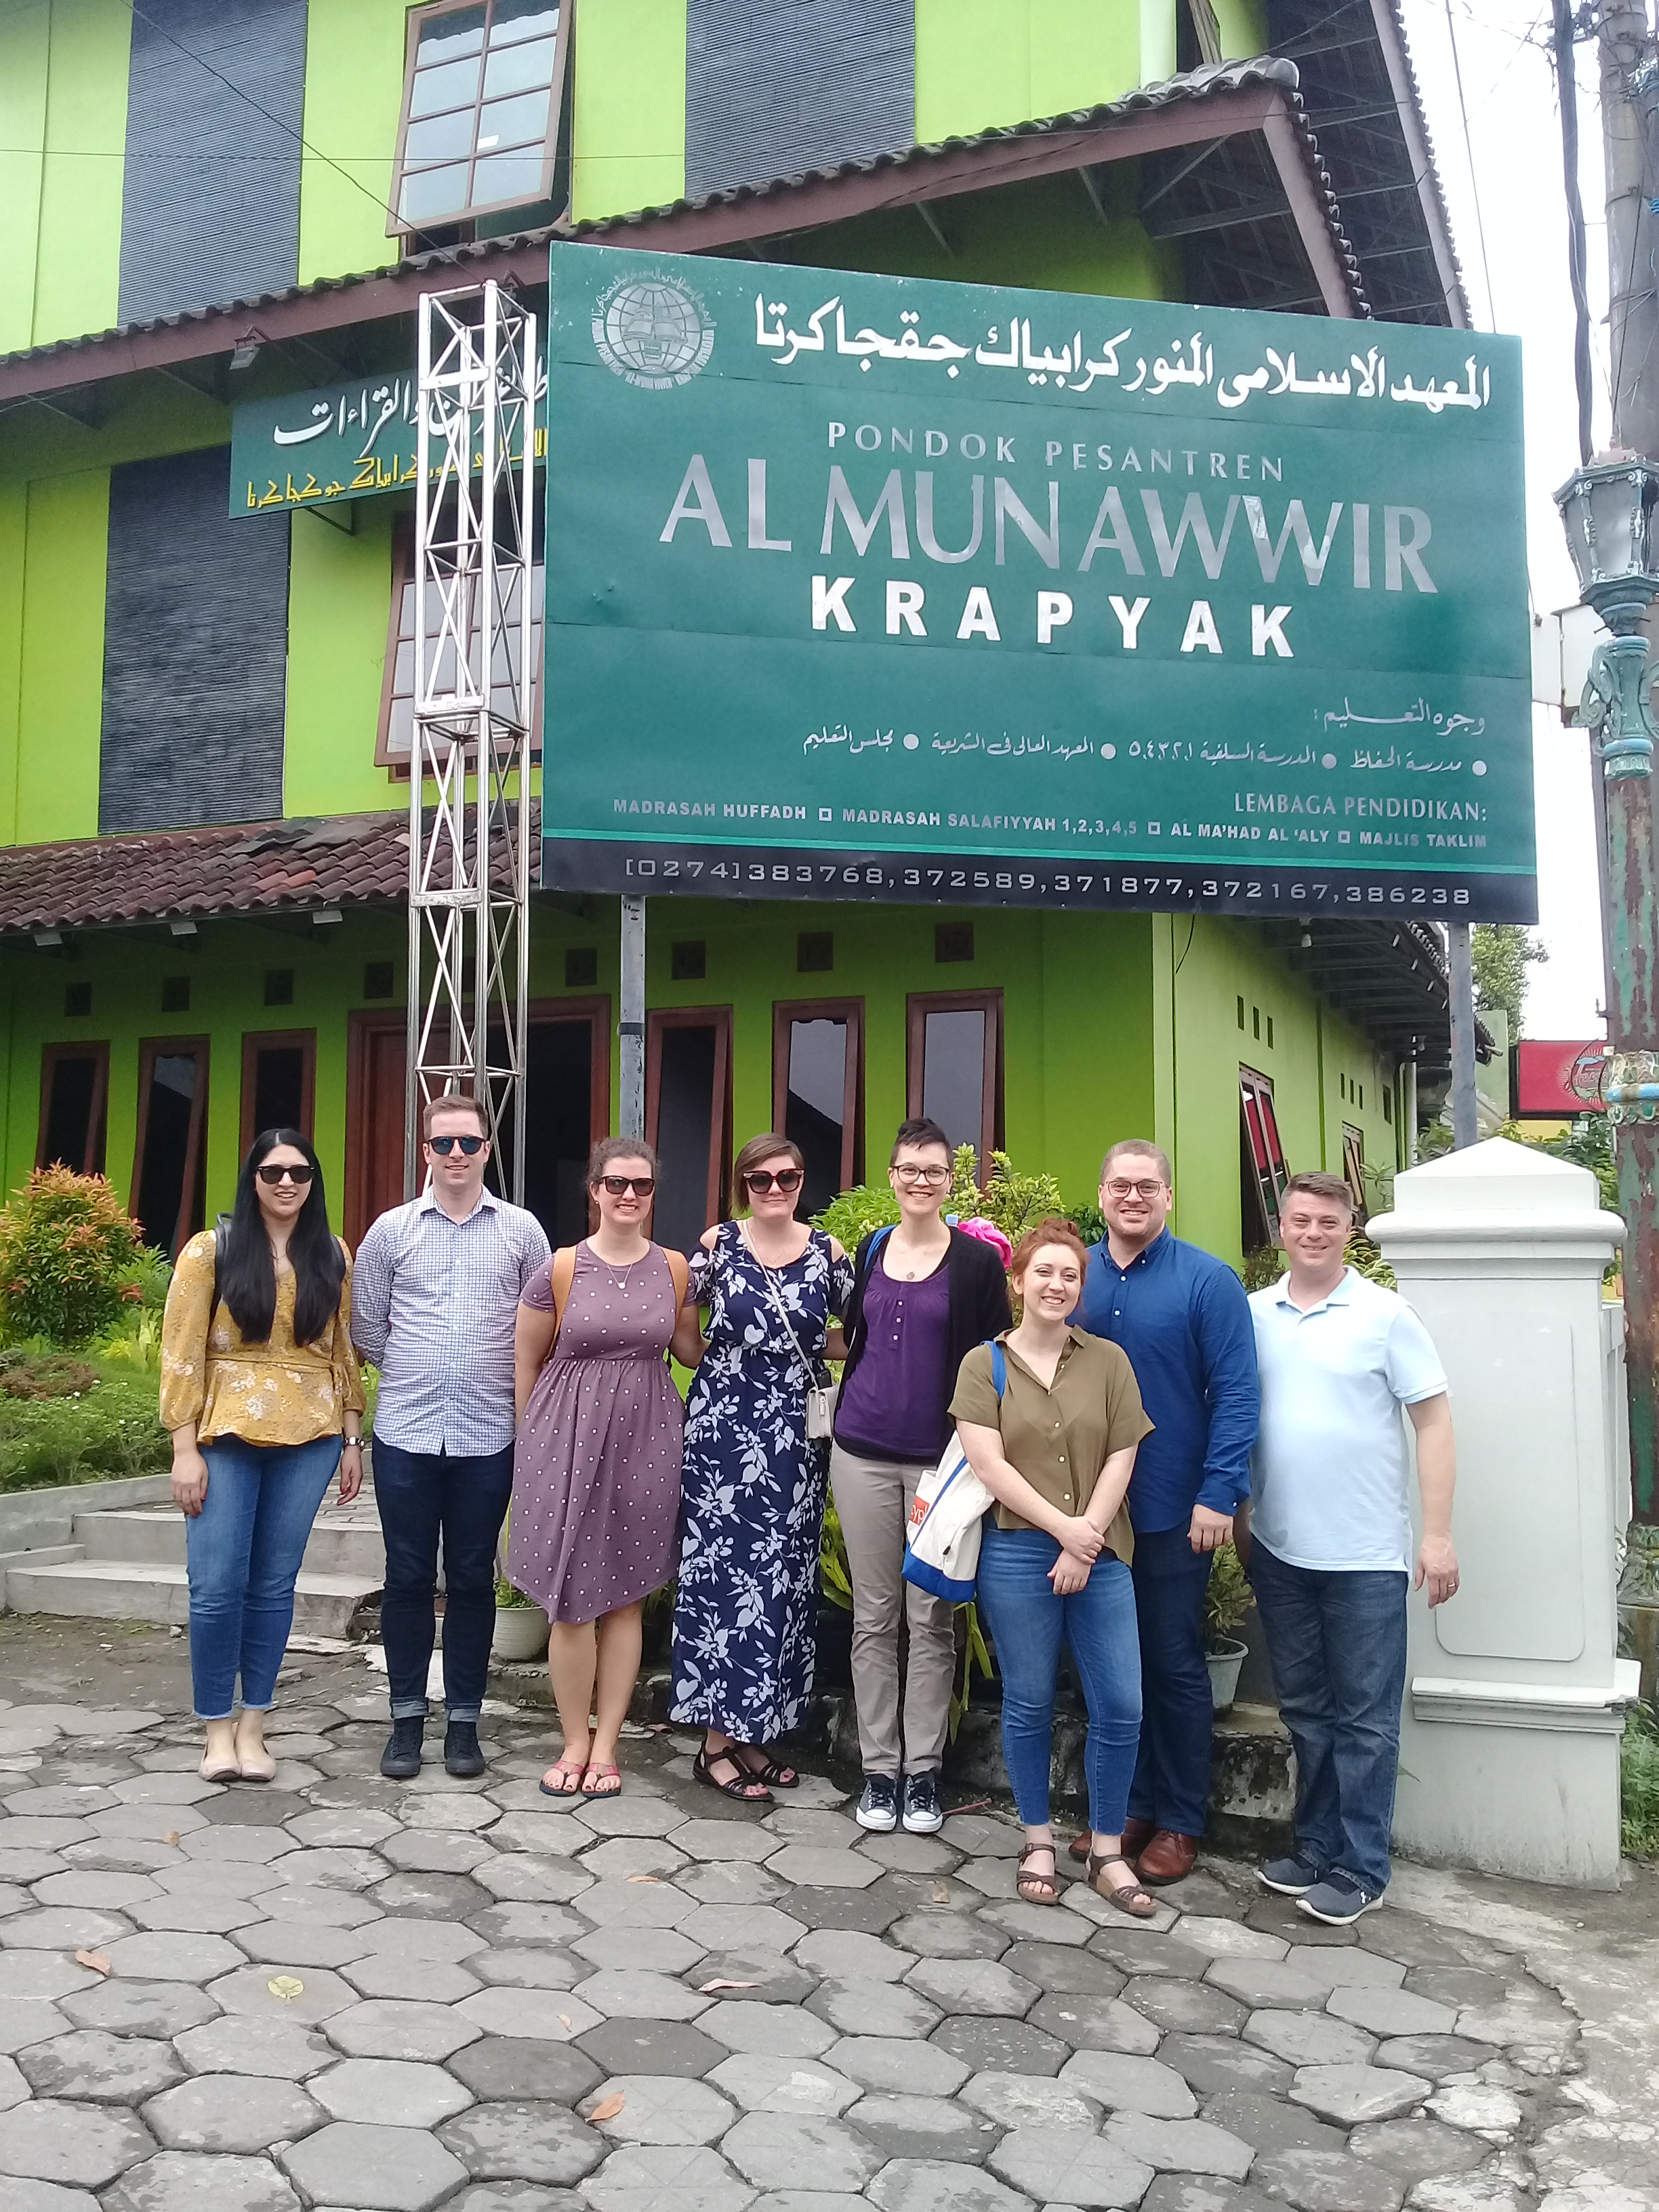 The visiting scholars at Pondok Pesantren (Islamic Boarding School) Al-Munawwir in Yogyakarta. The visitors helped lead discussions on Moderate Islam, Islam in Politics, and Islam & Gender.